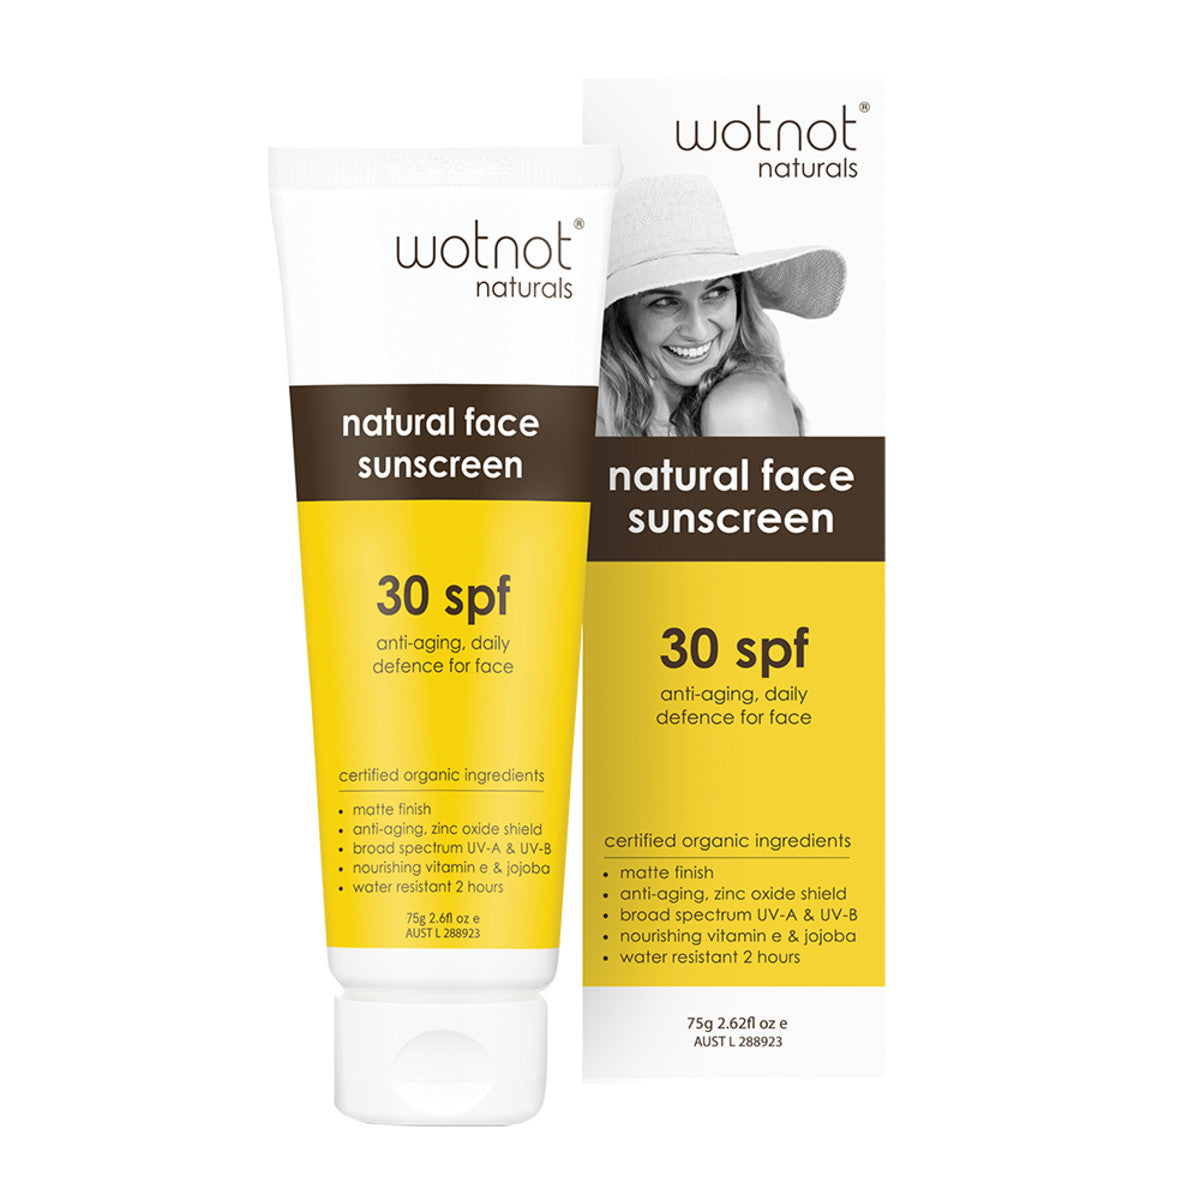 Wotnot Natural Face Sunscreen SPF 30 - The Conscious Spender